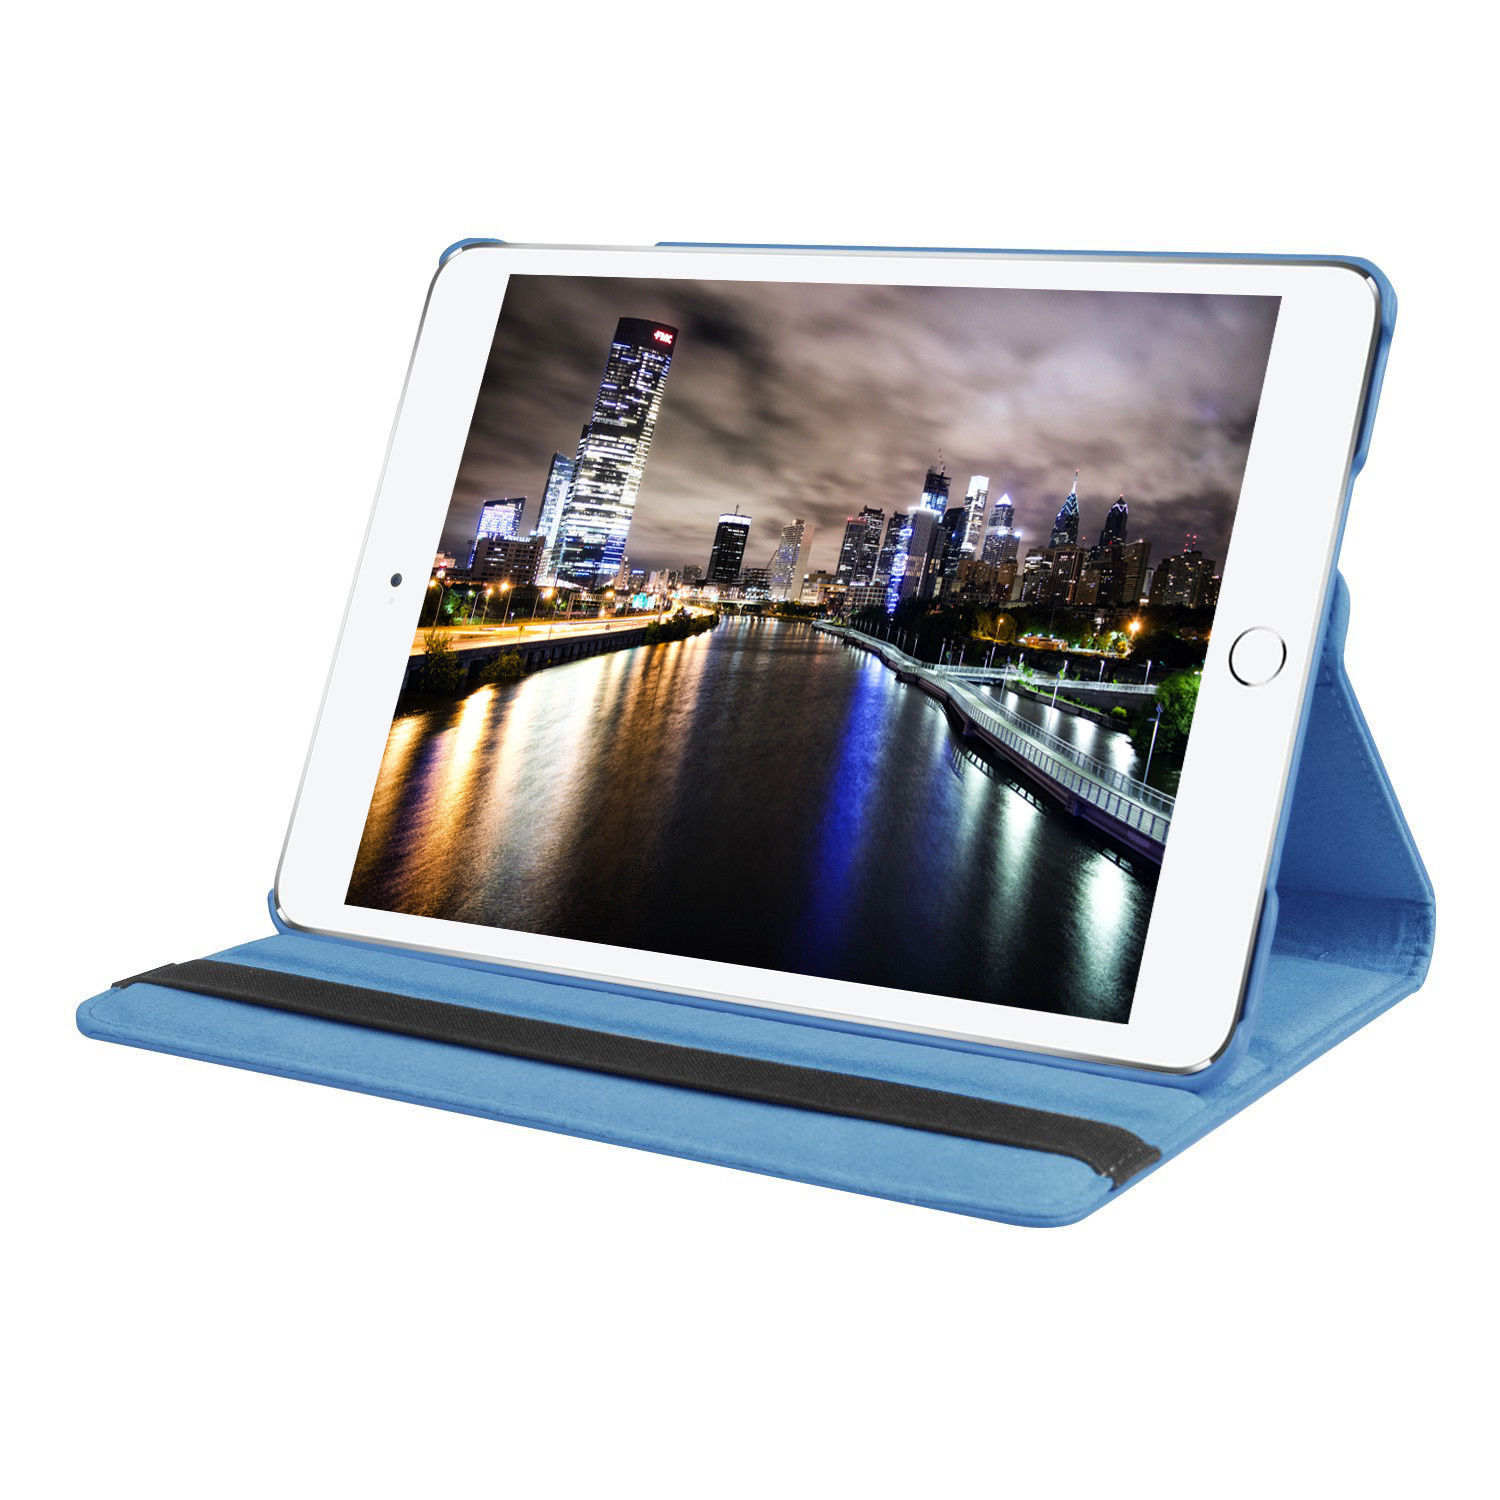 Custodia-per-Apple-iPad-Pro-2017-iPad-Air-3-10-5-Smart-Cover-Case-Custodia-Protettiva miniatura 54